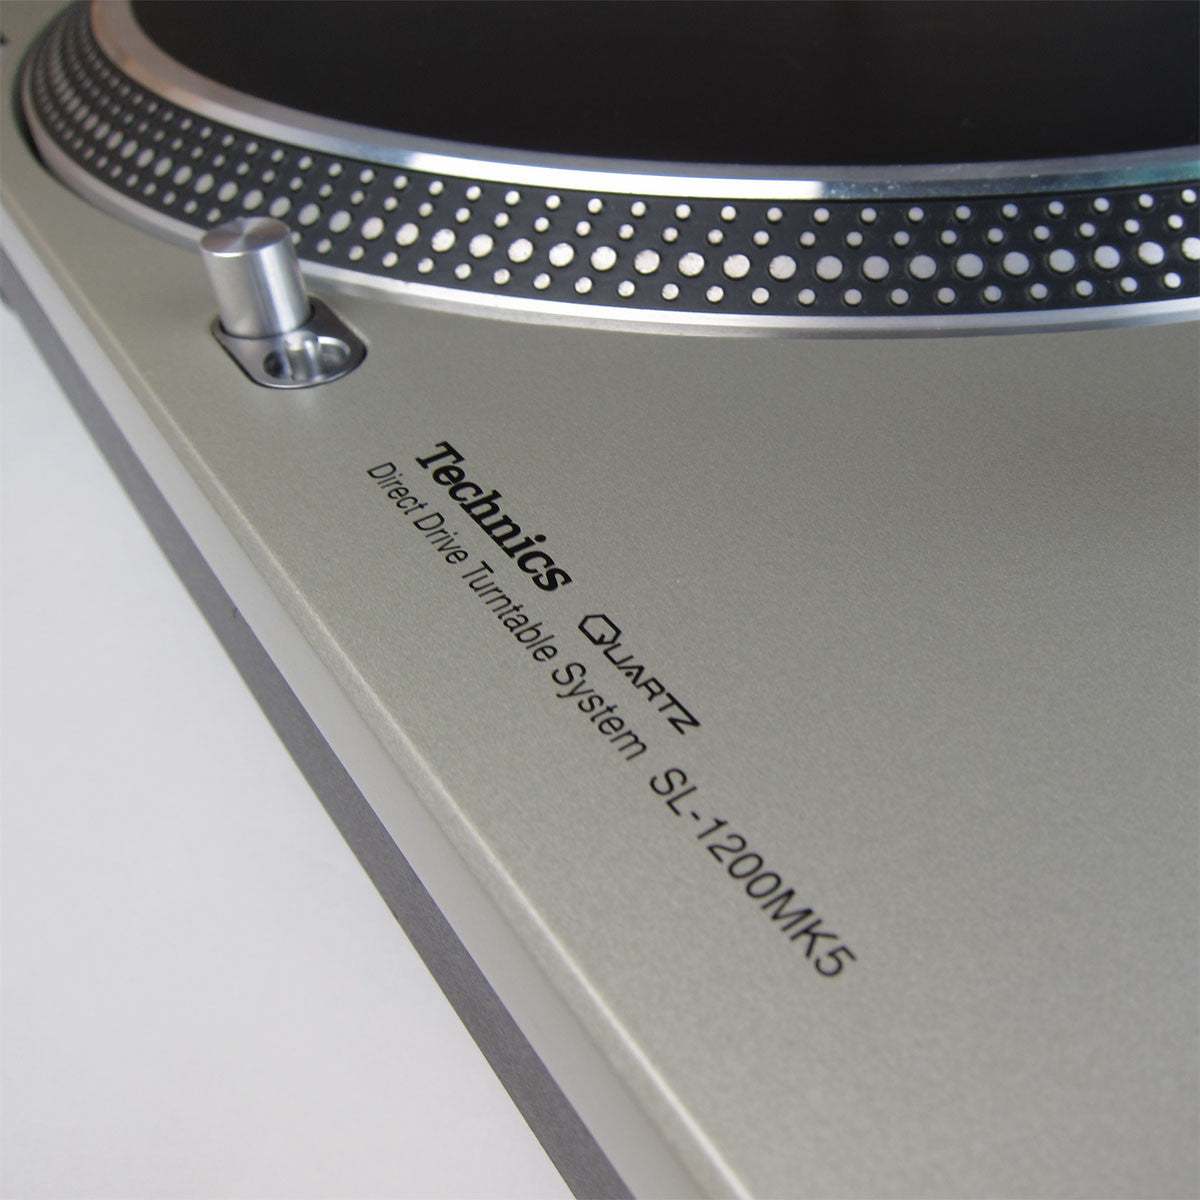 Technics: SL-1200MK5 Turntable - MCC Refurbished light